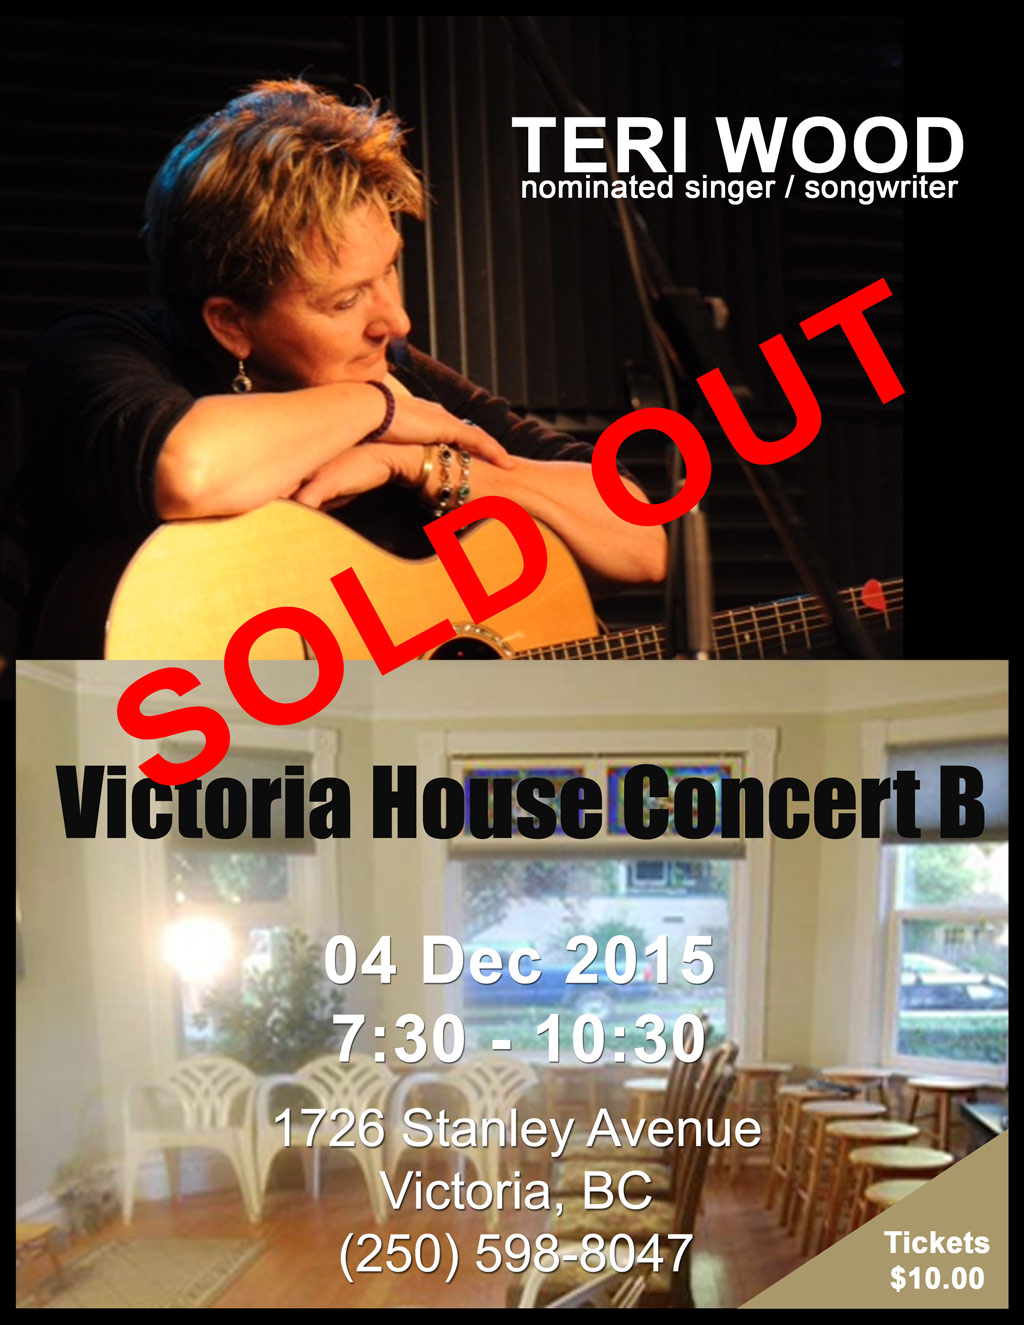 Victoria House Concert B featuring Nominated Recording Artist Teri Wood Sold Out